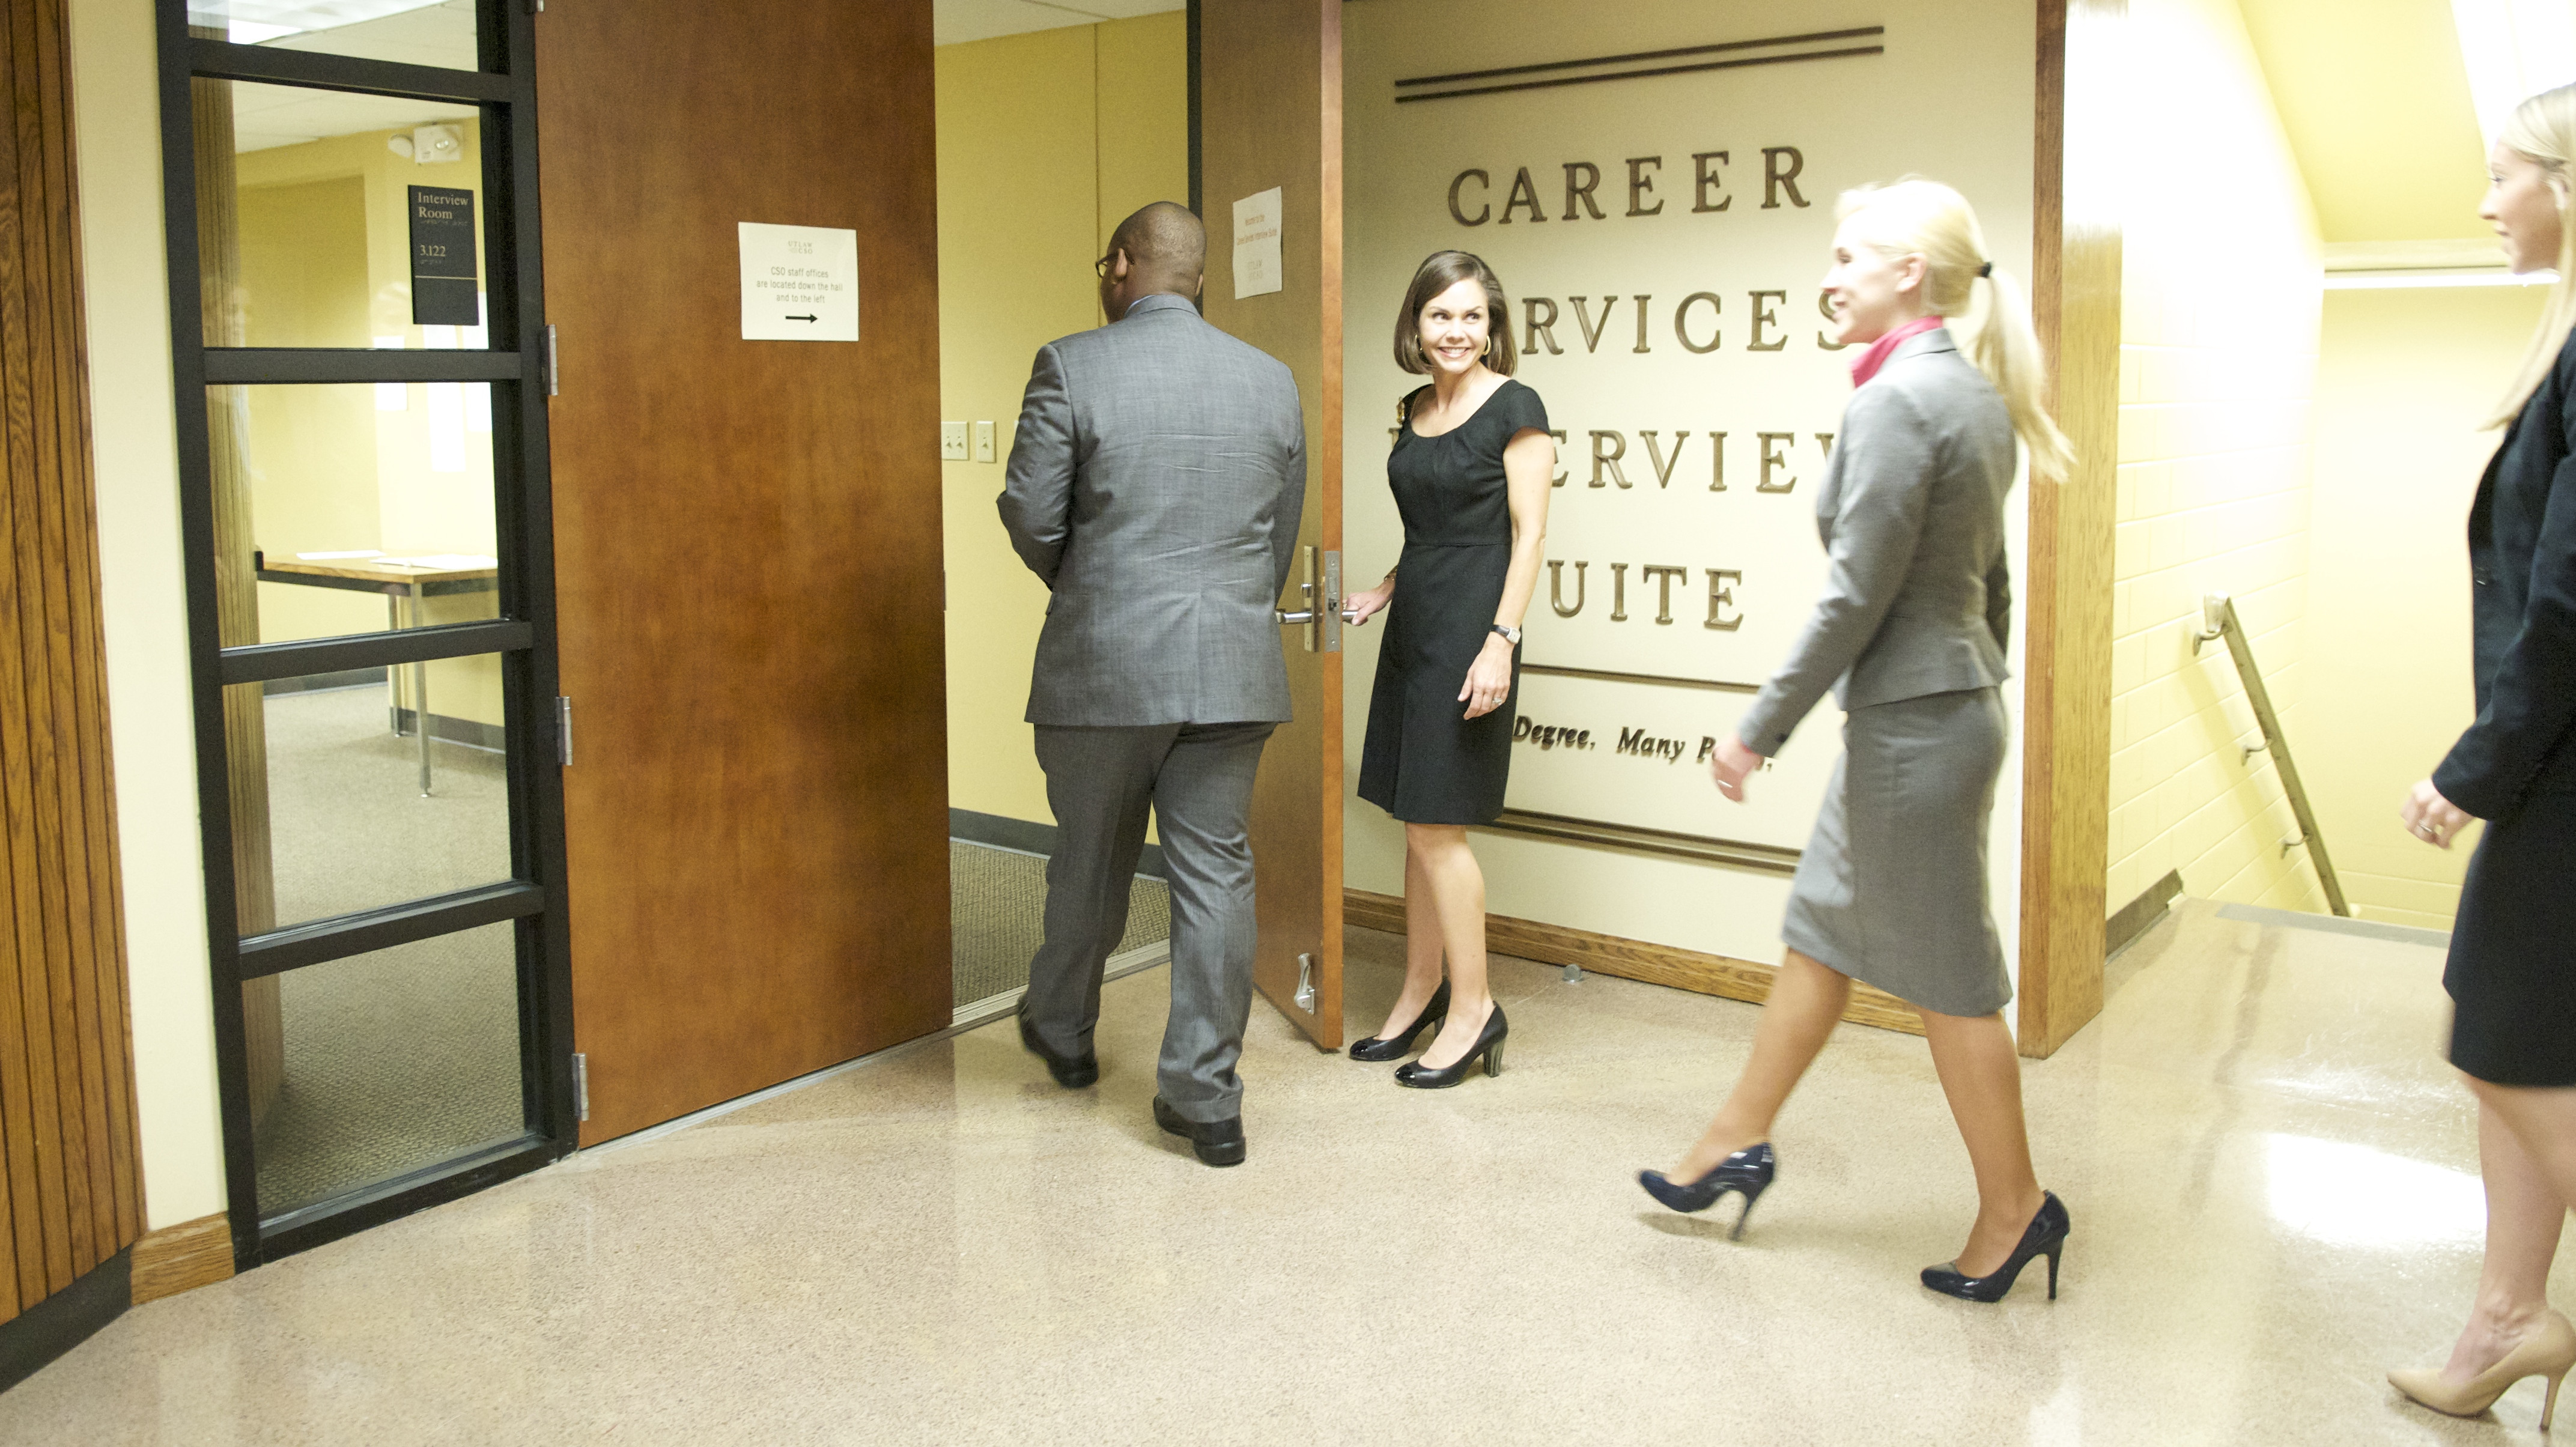 Students entering Career Services Interview Suite